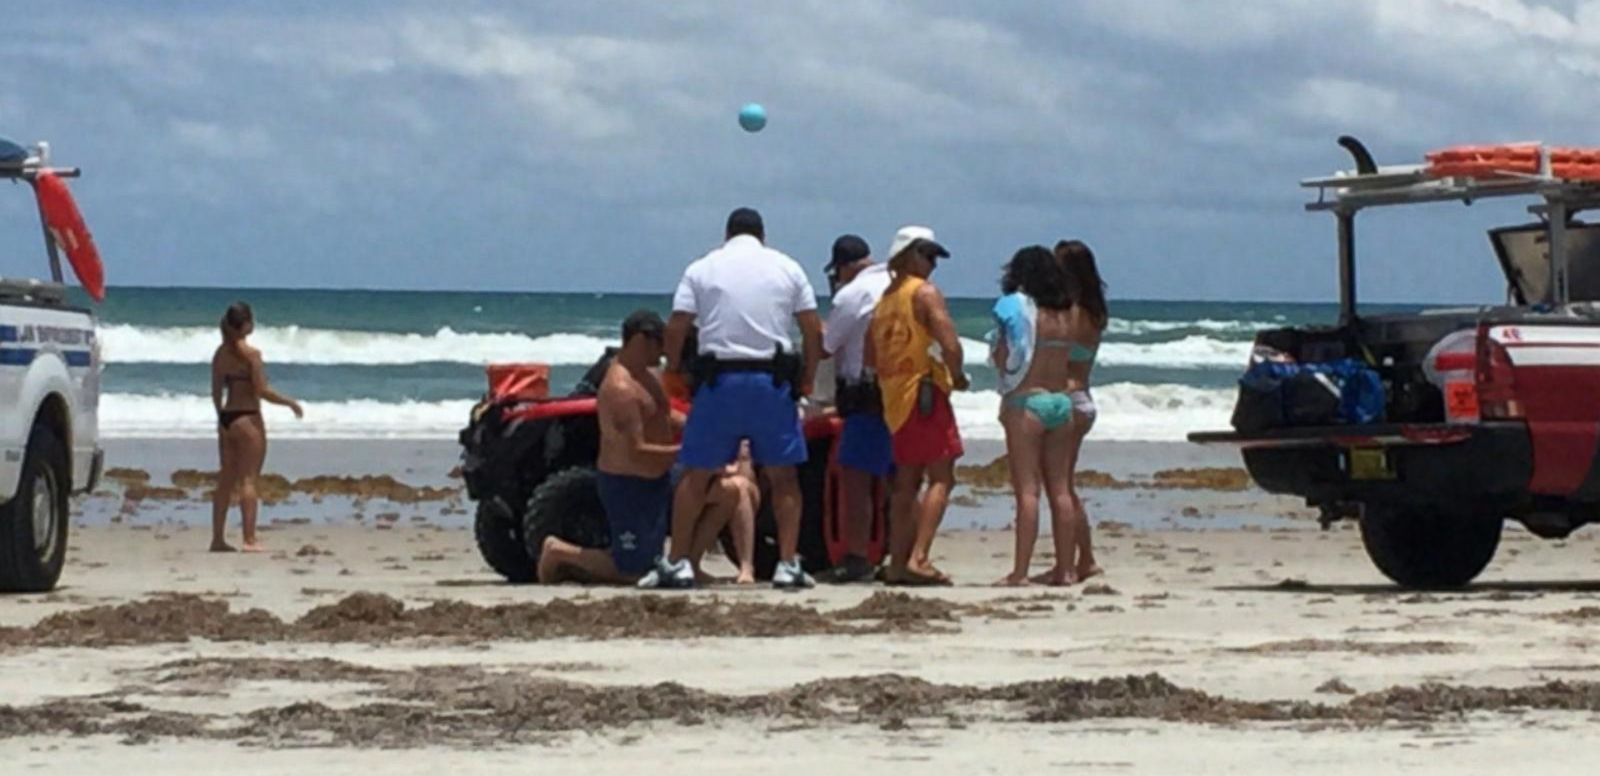 VIDEO: Two Florida Women Both Attacked by Sharks on Same Day